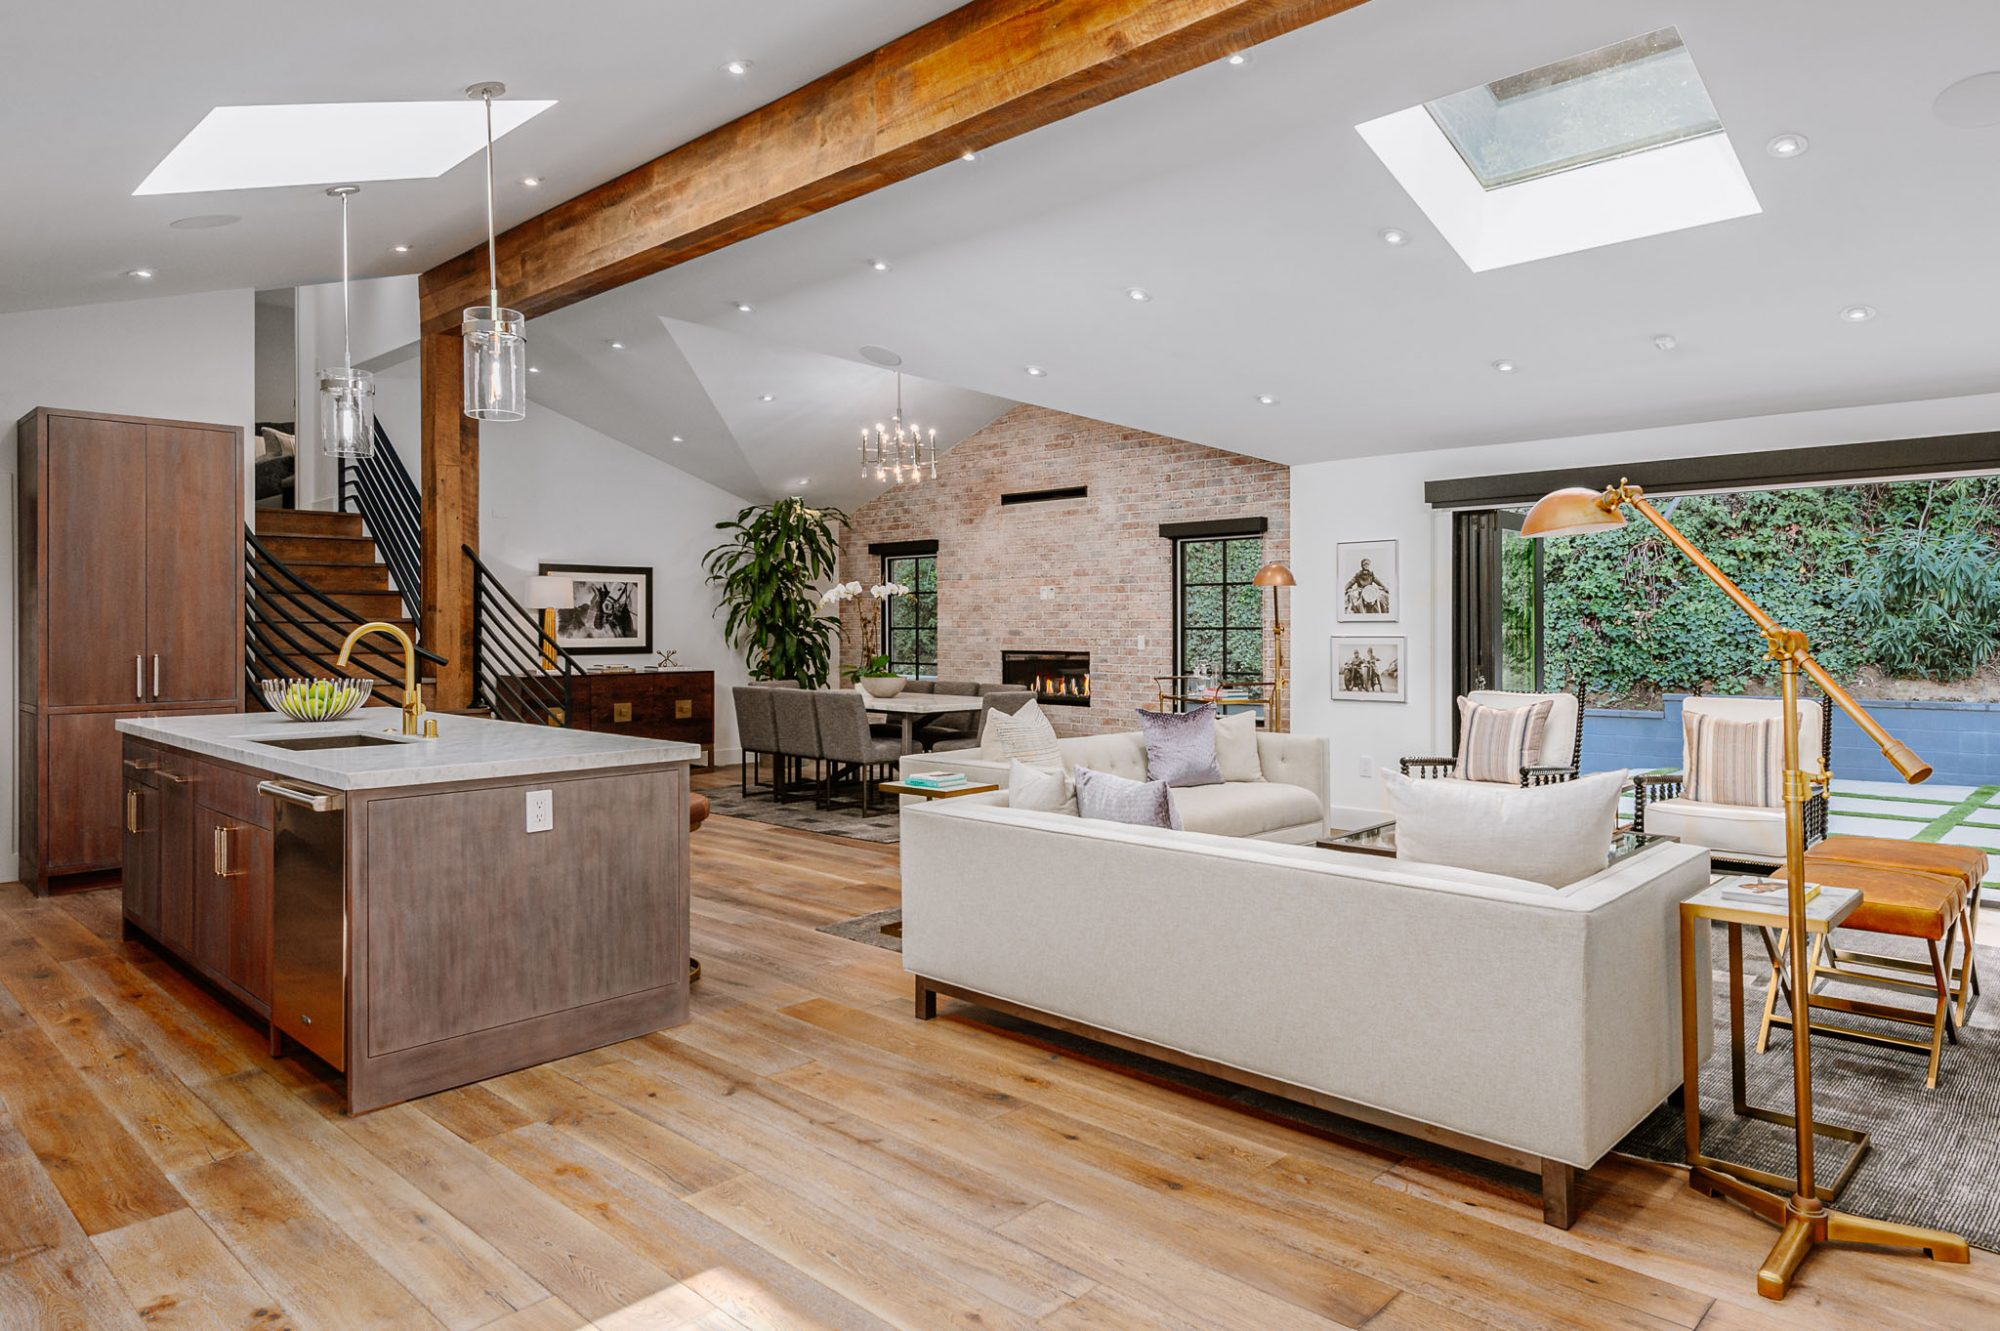 Jeff Lewis Flips Another House for $3.5 Million Amid Custody Dispute and Split From Gage Edward